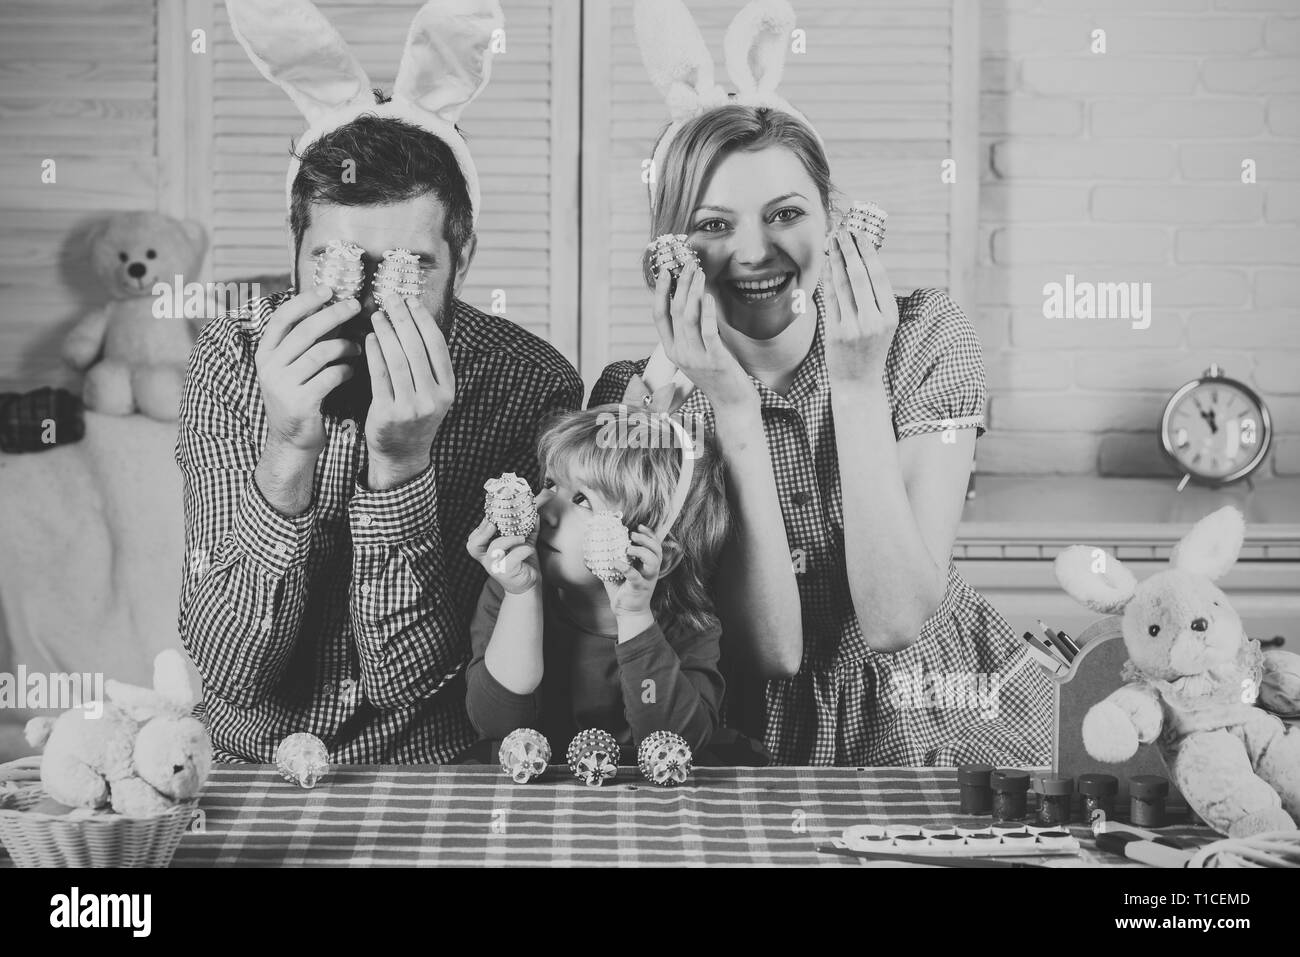 Family values, childhood, art, easter. - Stock Image